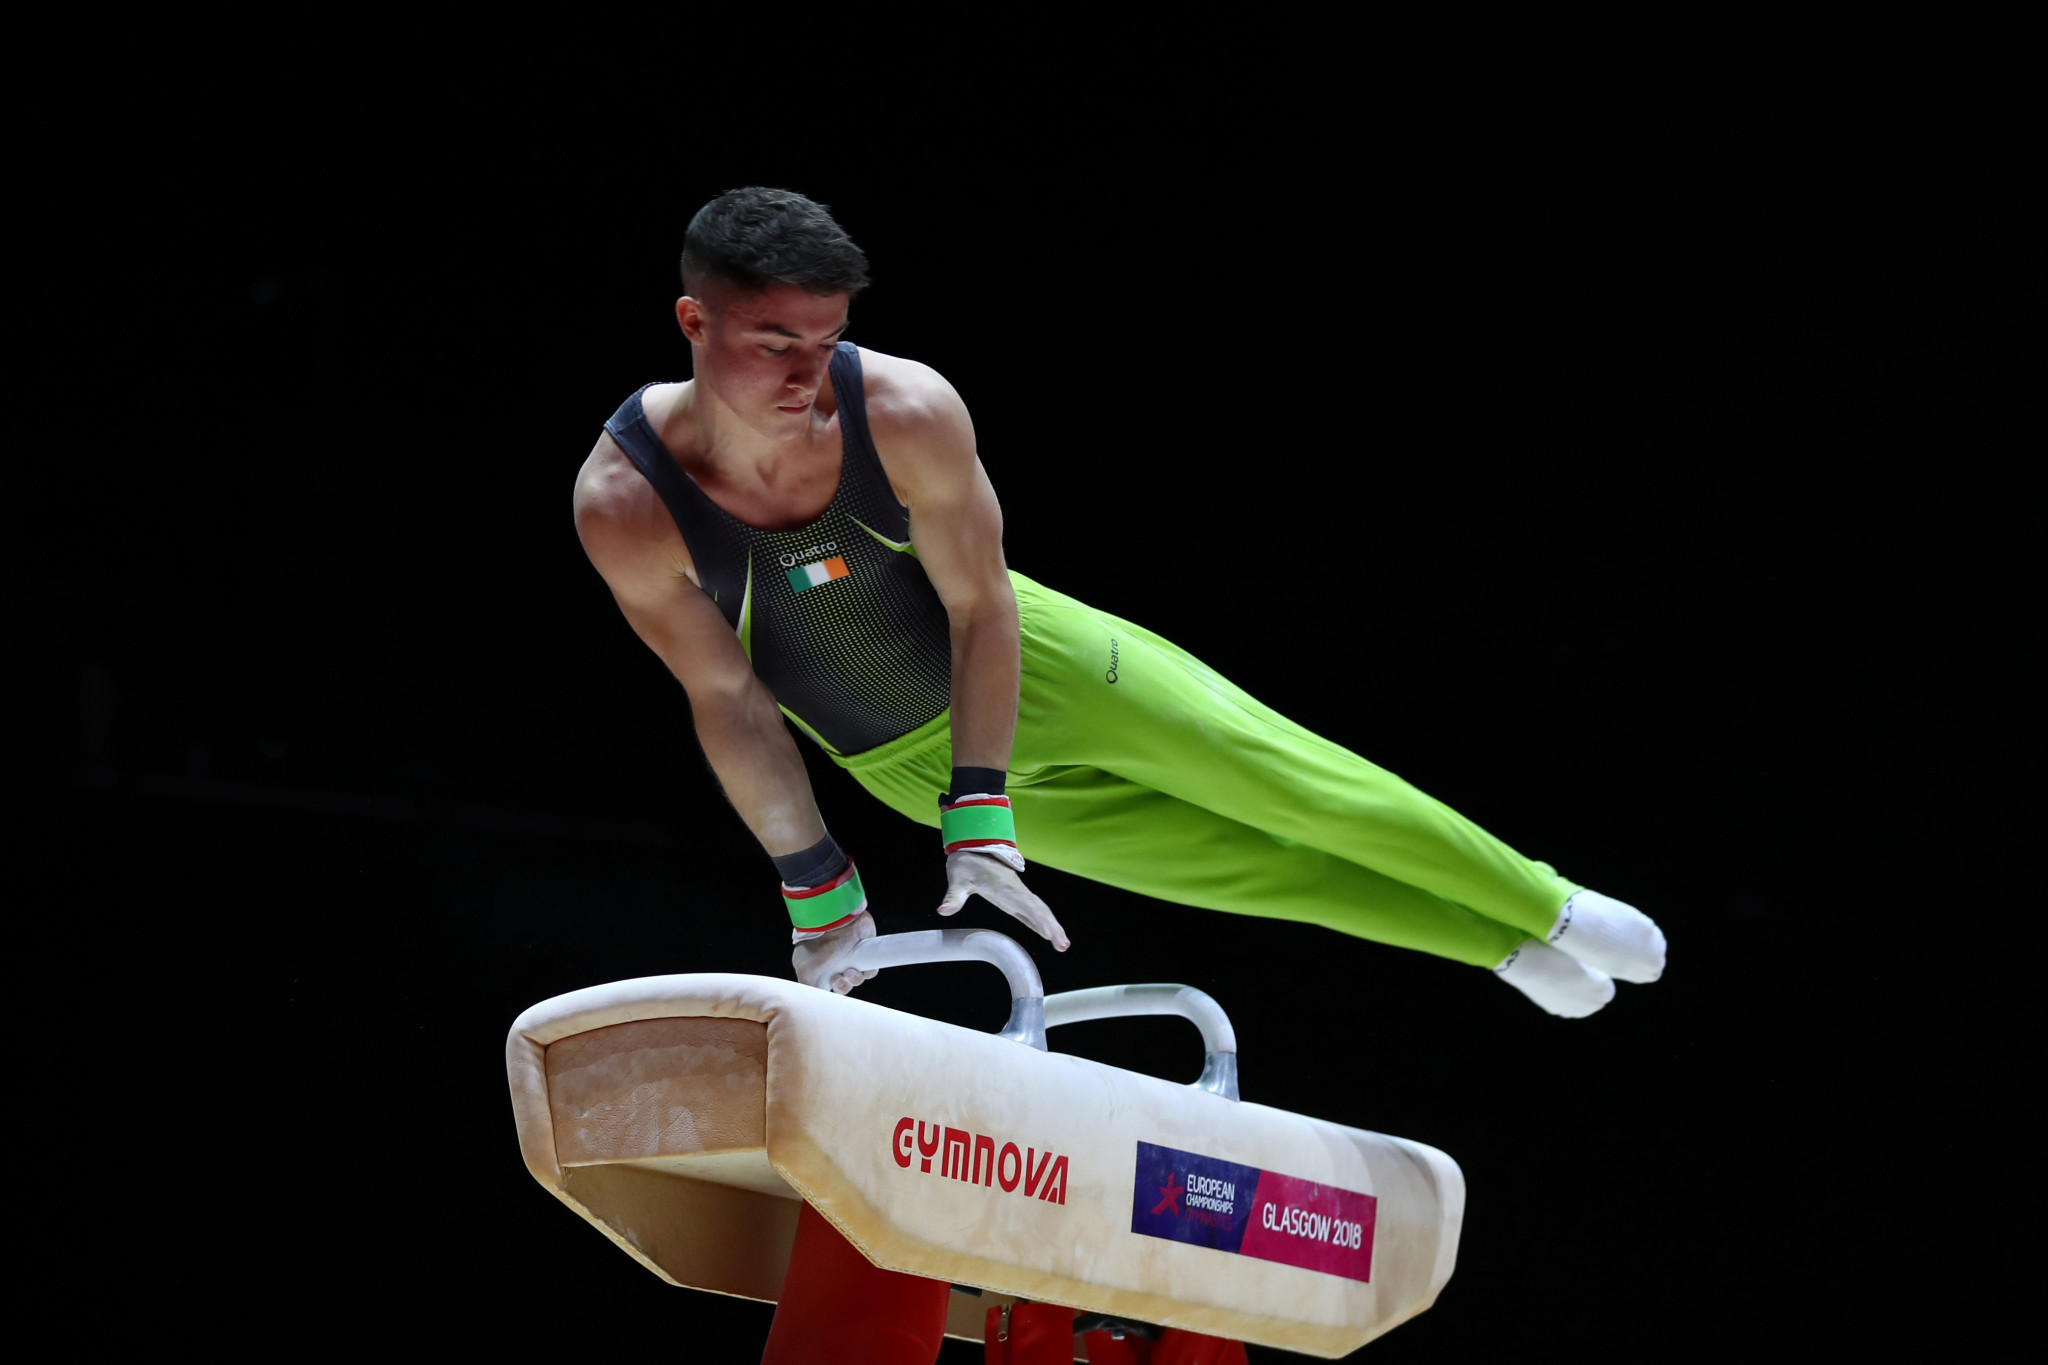 Irish gymnast claims clean-up after COVID-19 case caused World Championships mishap